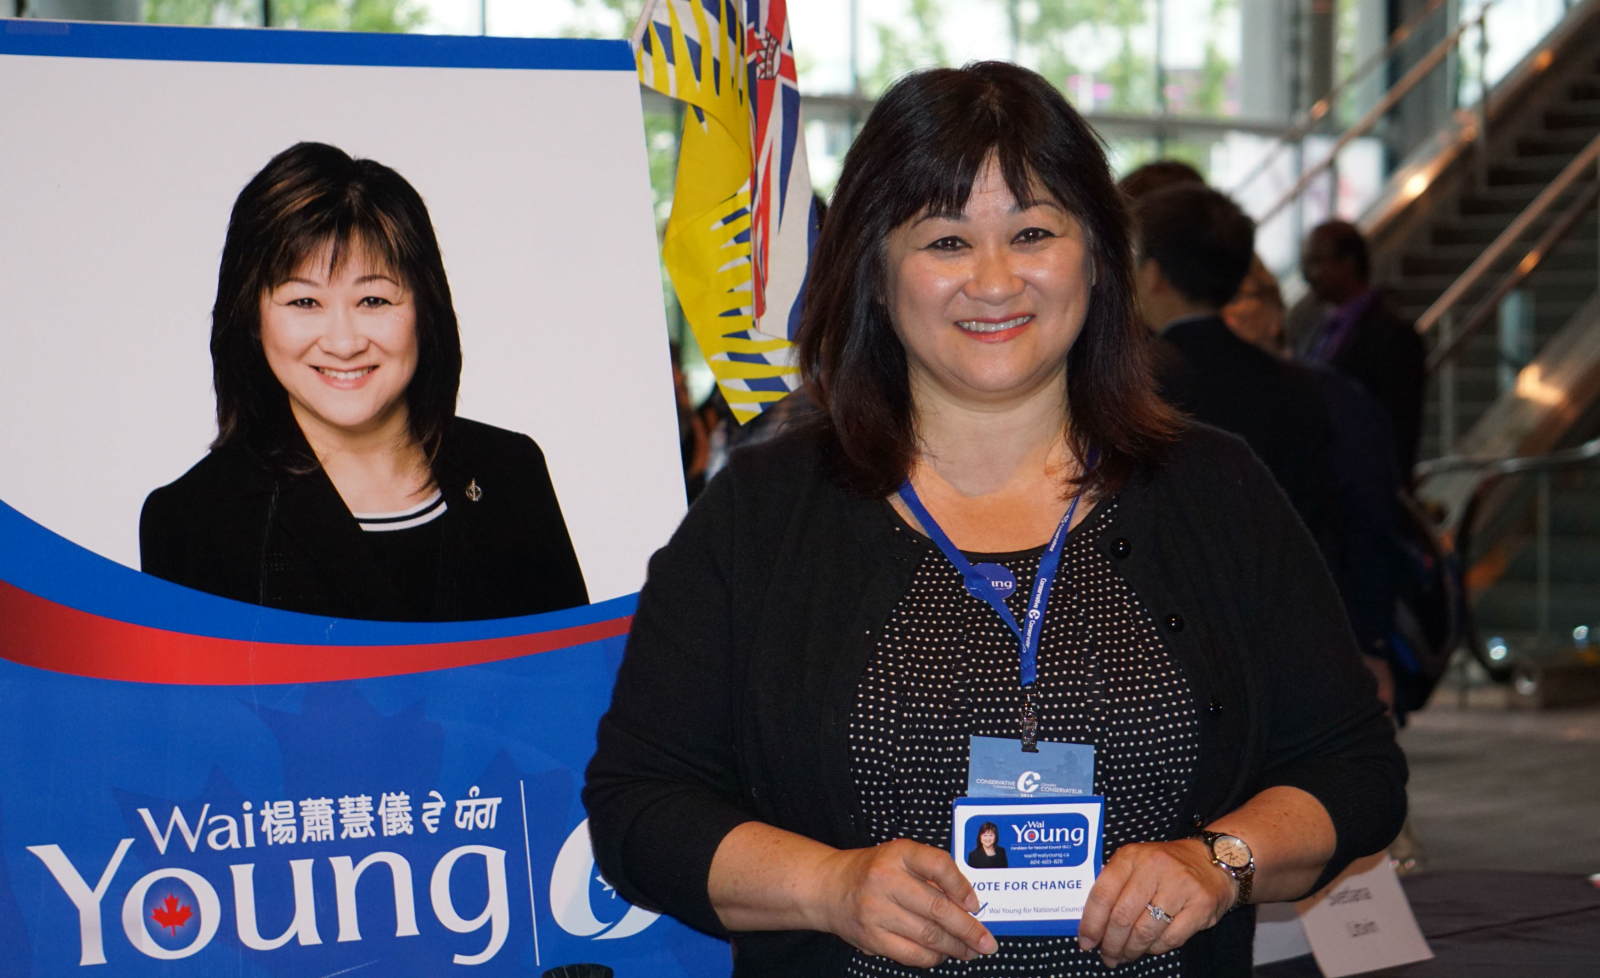 Wai Young, Vancouver South, Conservative Convention, Stephen Harper, National Council